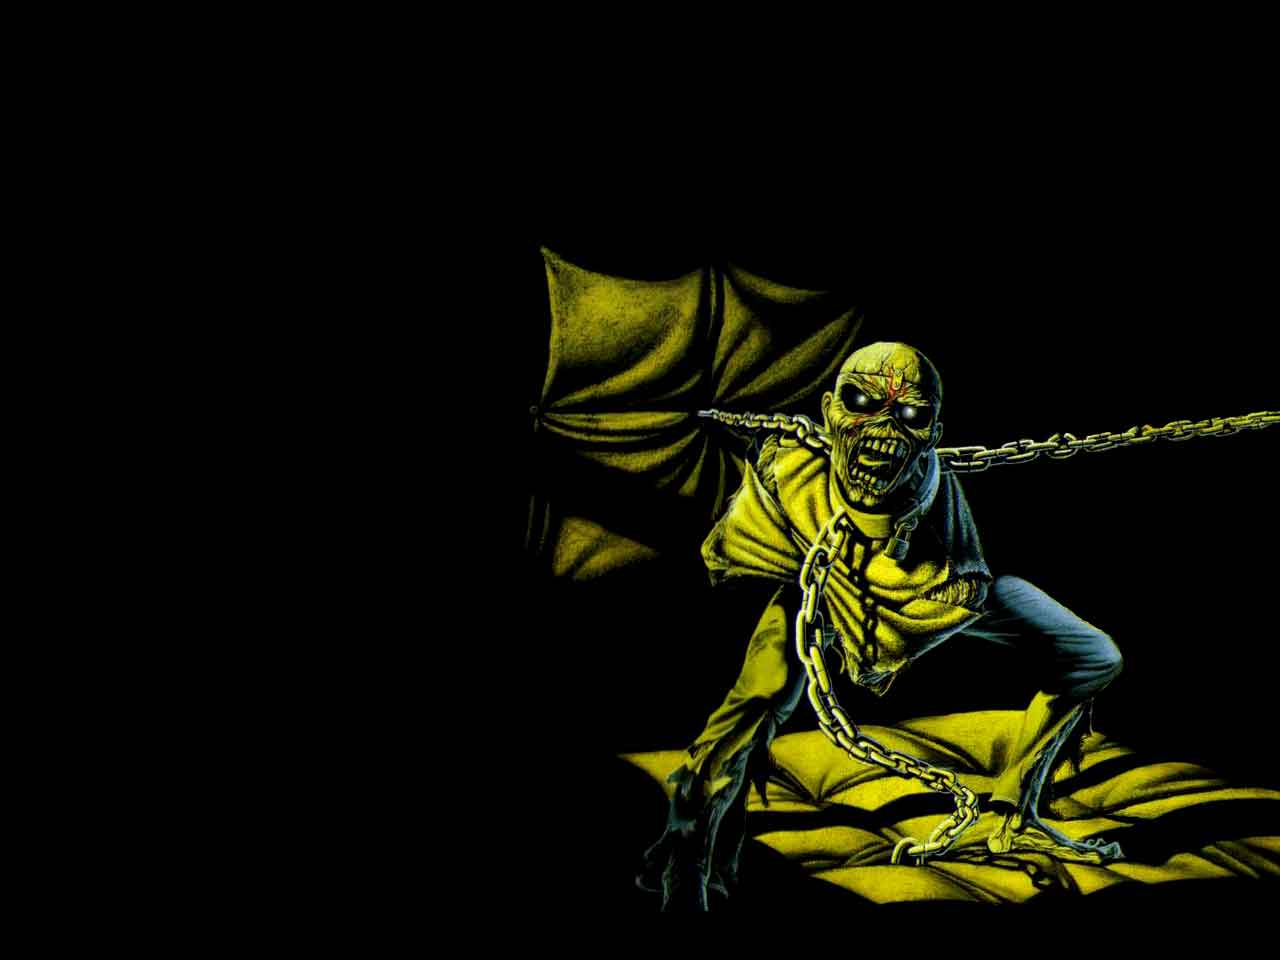 download by Iron Maiden Eddie wallpaper [1280x960] for your 1280x960